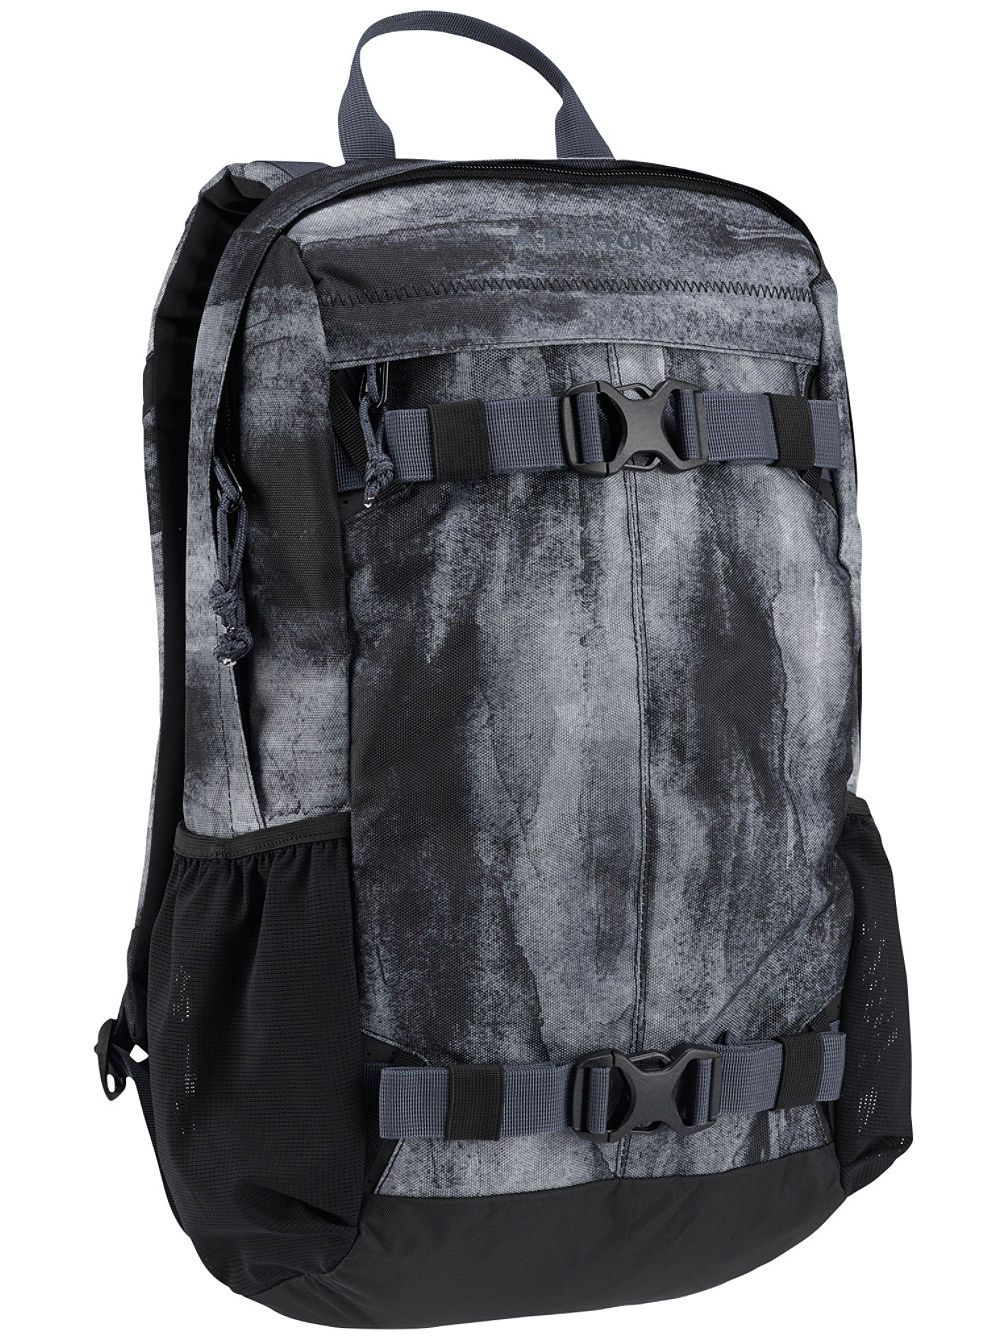 Timberlite 15L Backpack